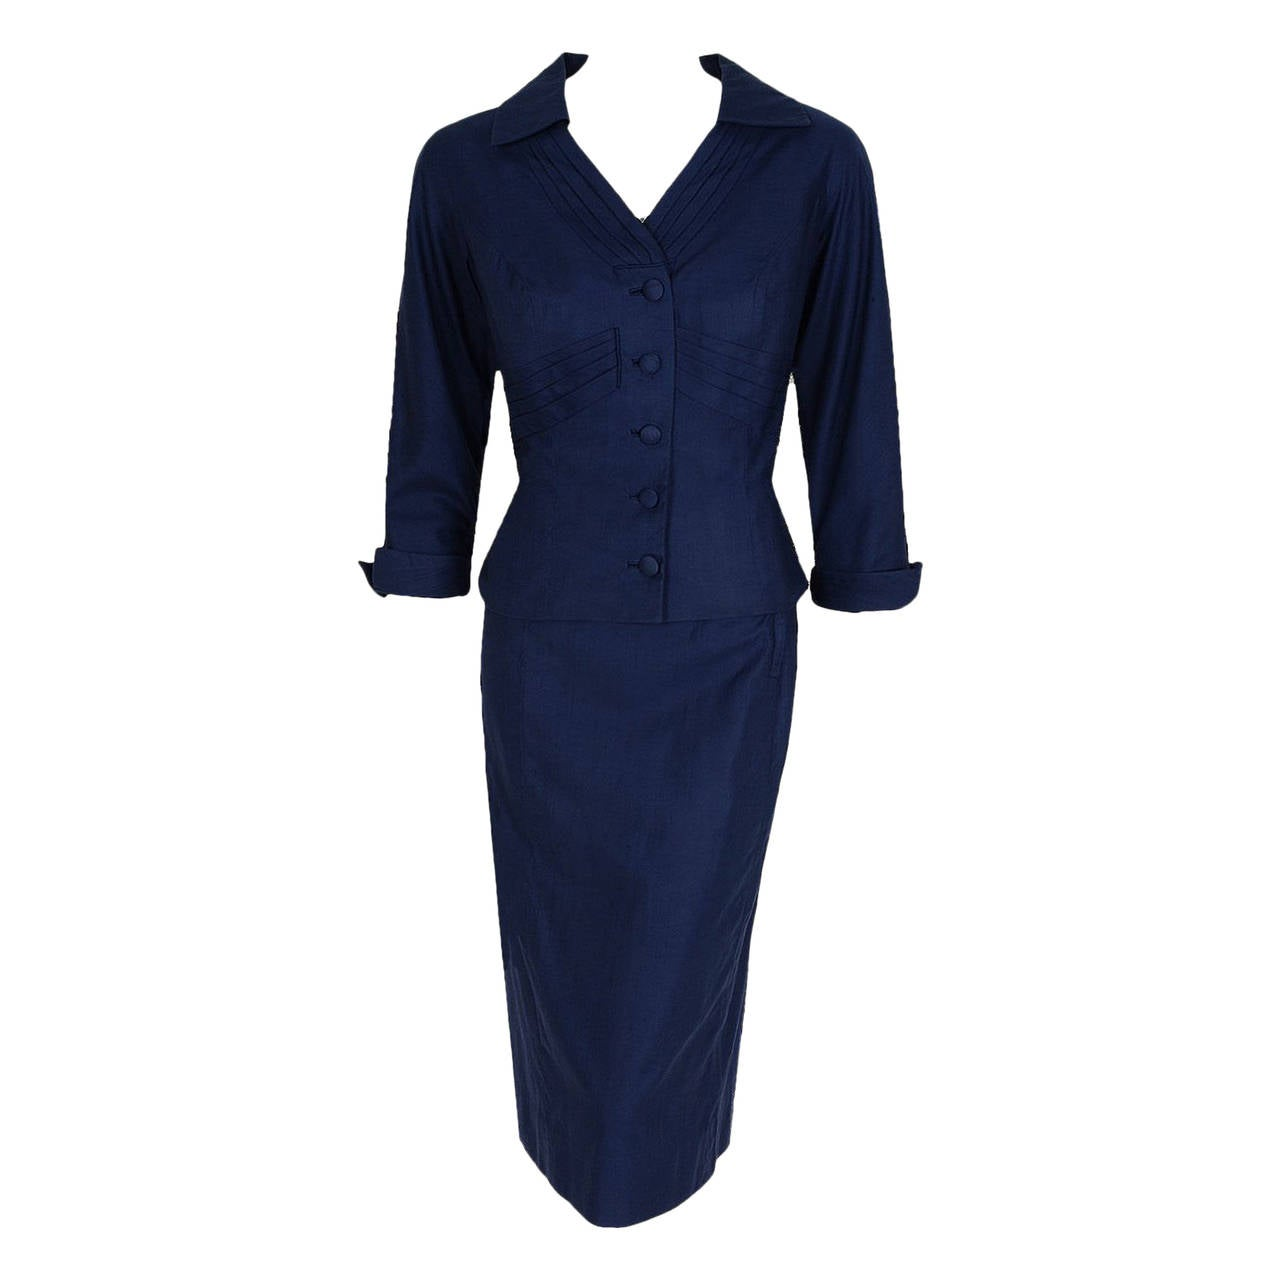 1940's Don Loper Navy-Blue Silk Tailored Hourglass Noir Pencil-Skirt Suit 1